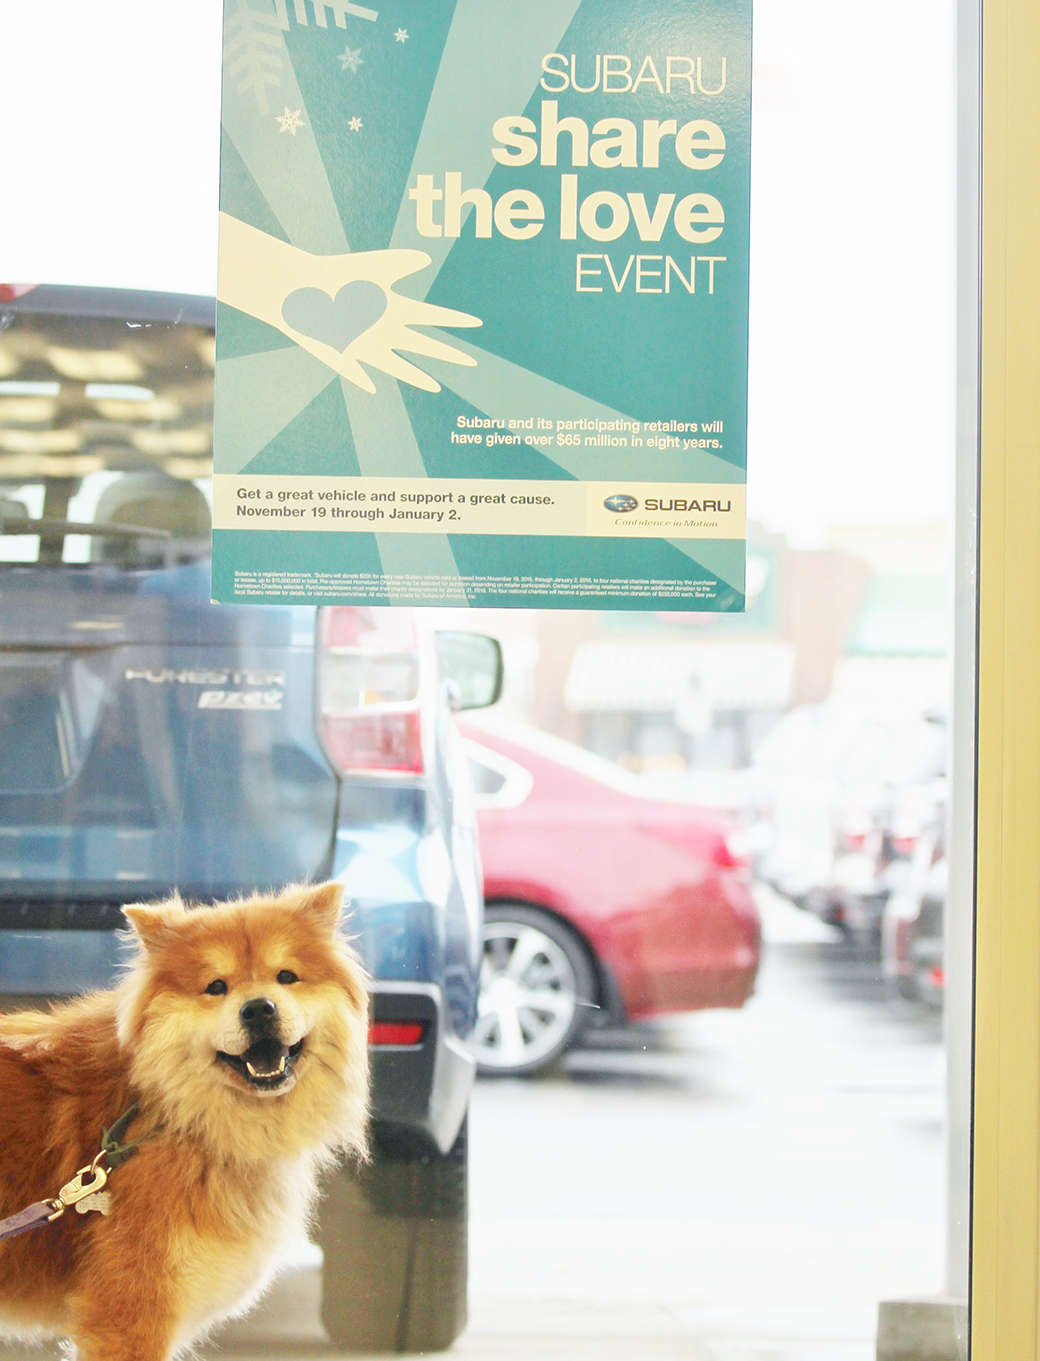 Happy pup at Subaru Share the Love Event